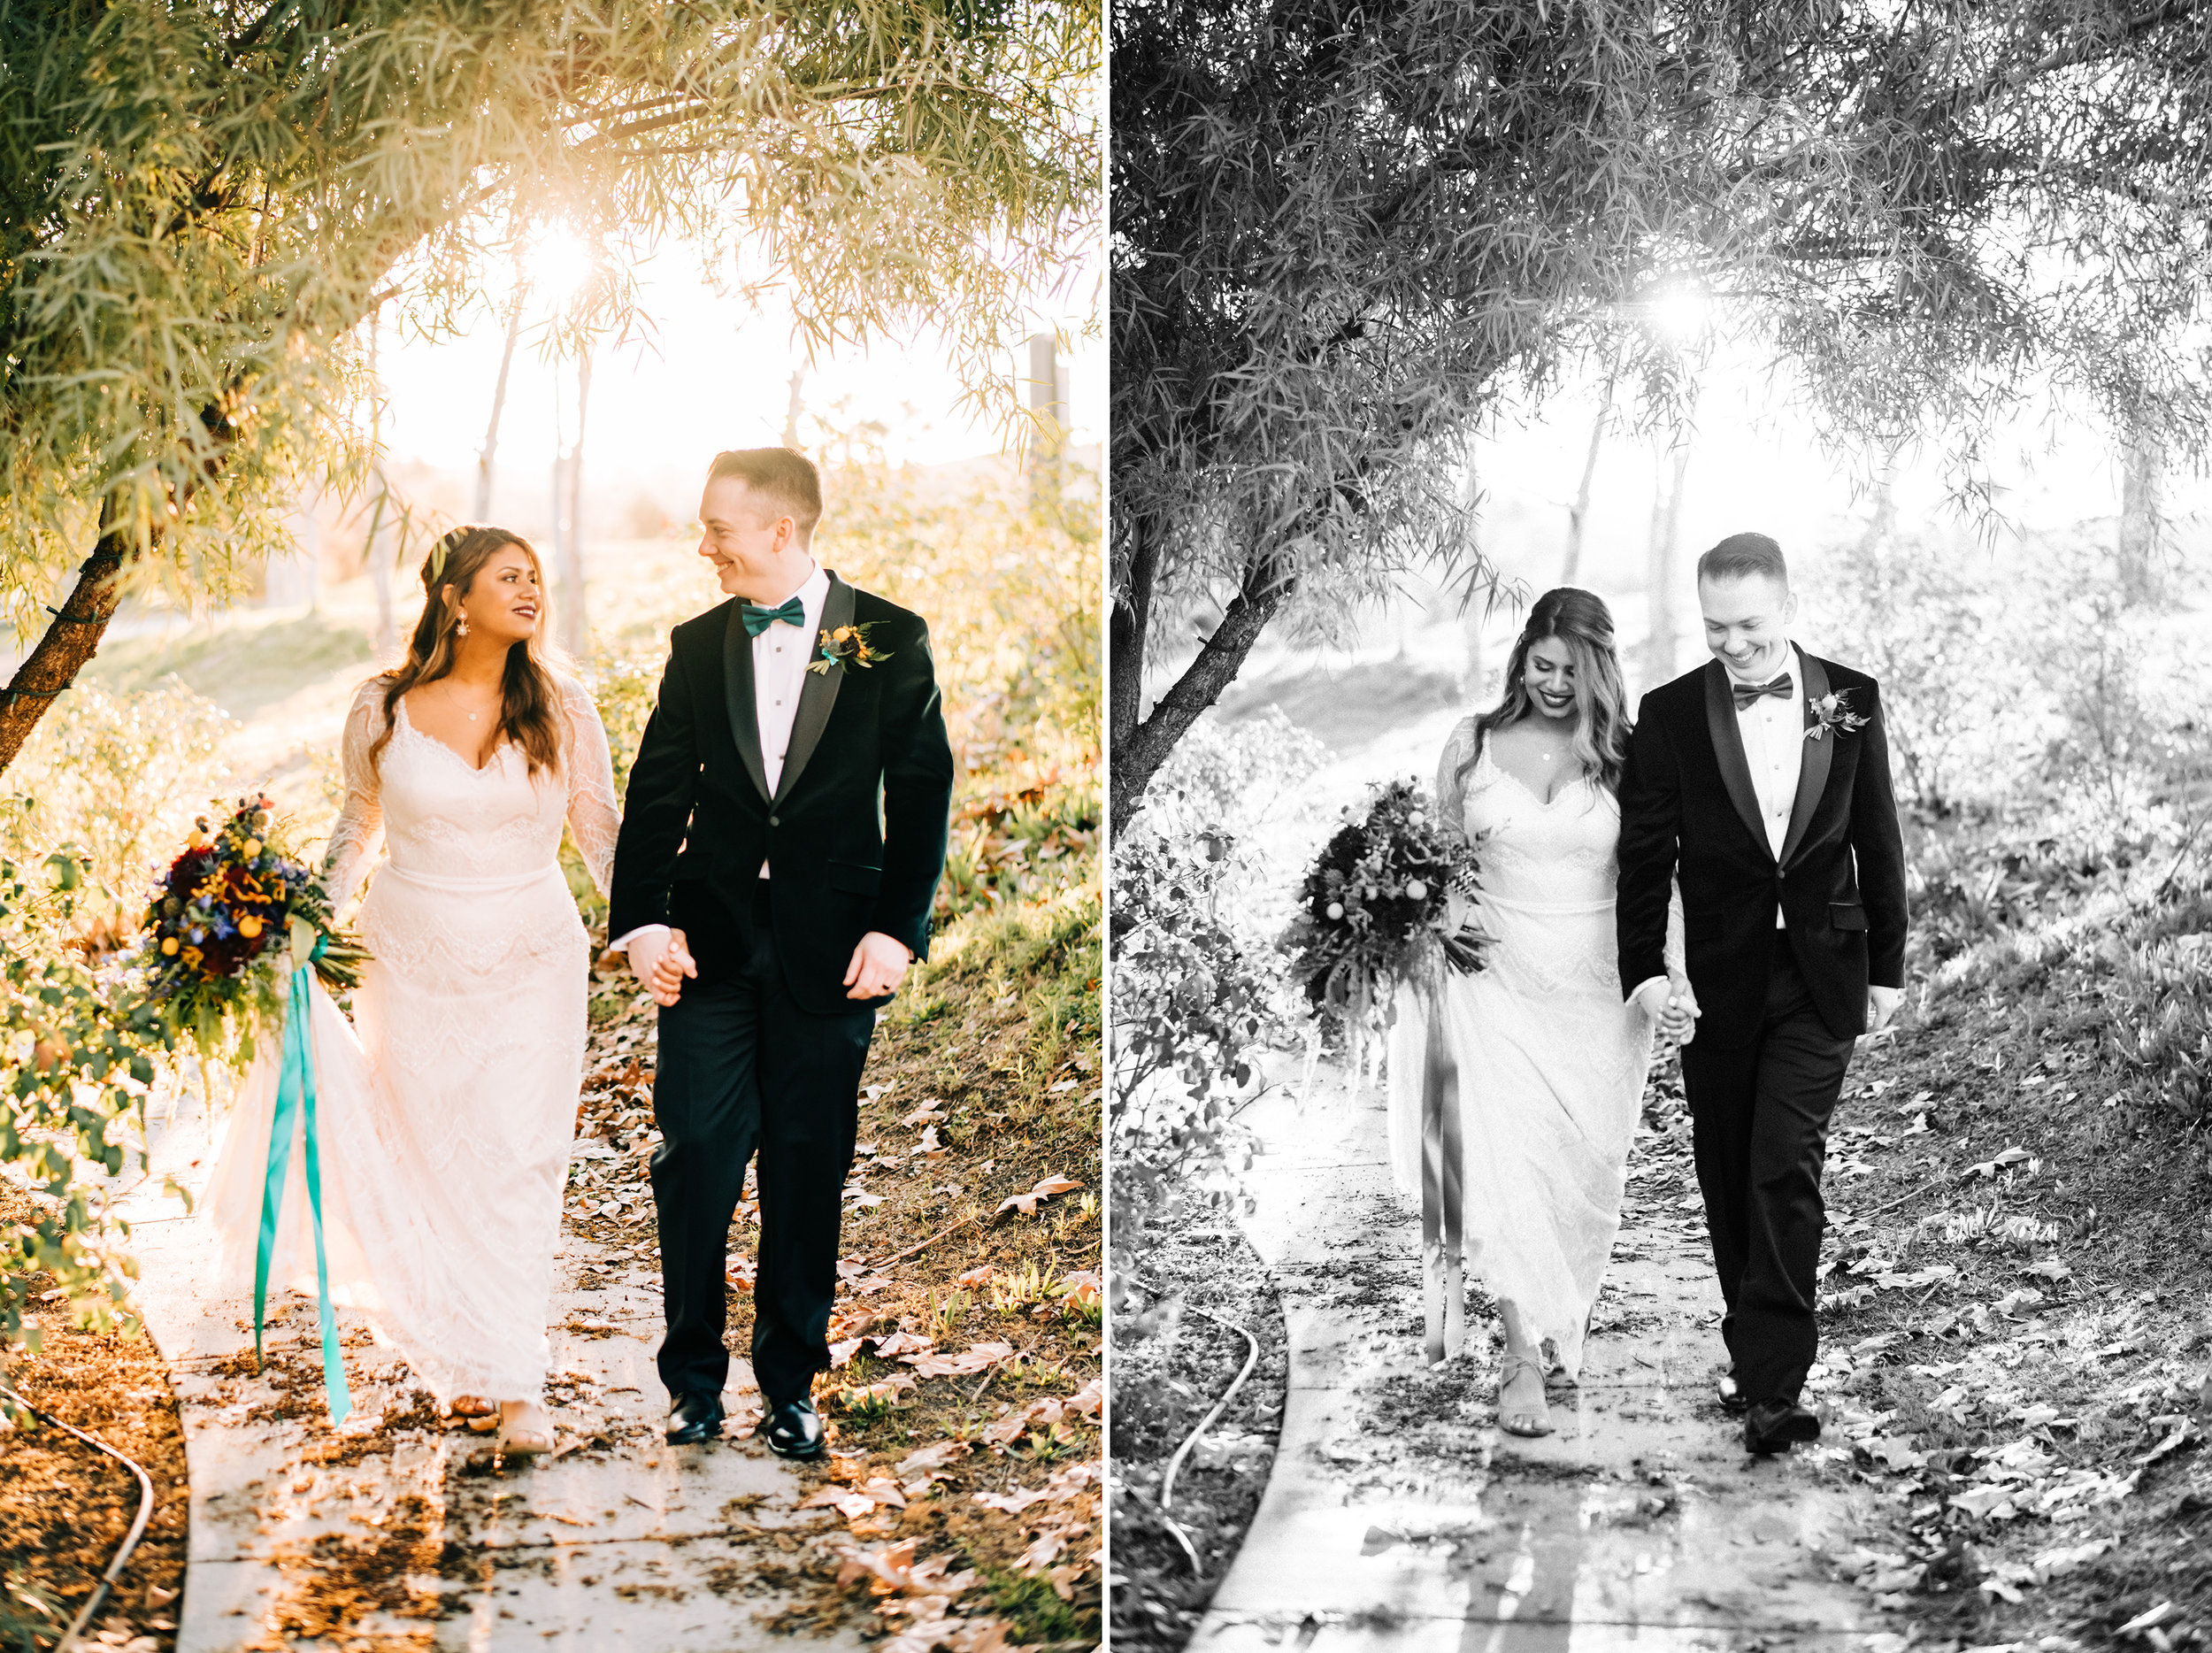 bay area nontraditional wedding photographer southern california boho wedding love light magic san francisco oakland northern california-815.jpg